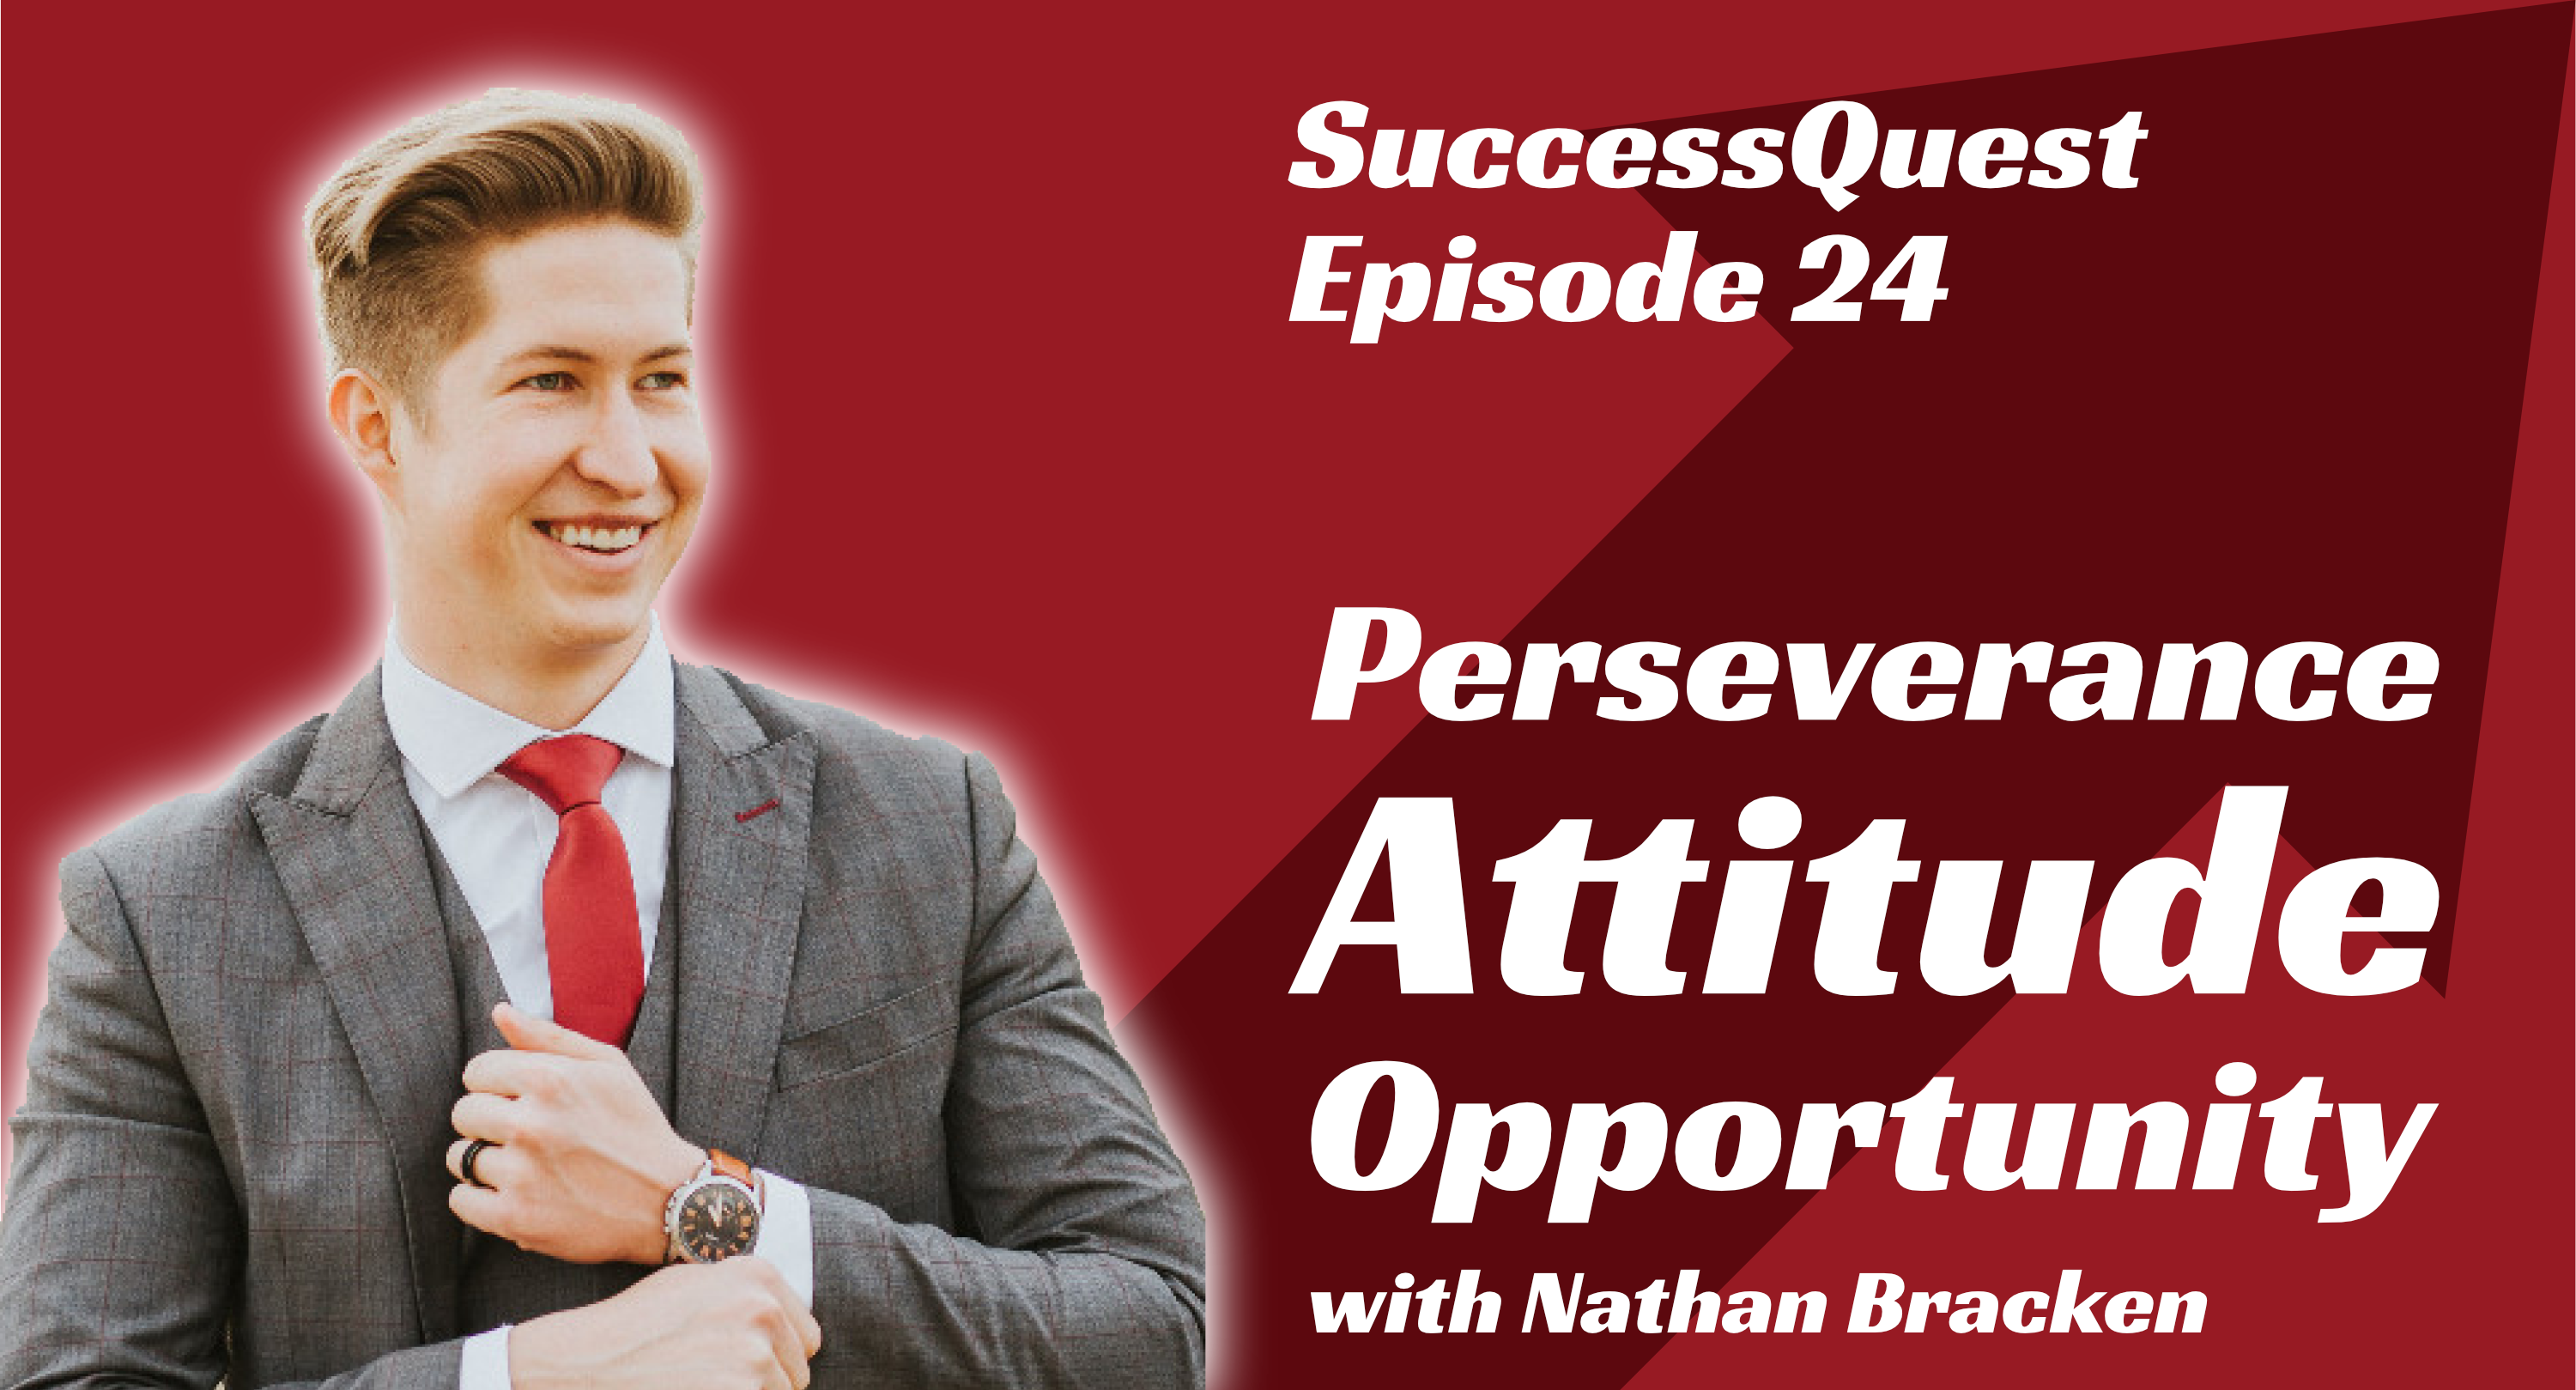 Perseverance Attitude and Opportunity Nathan Bracken Jamba Juice